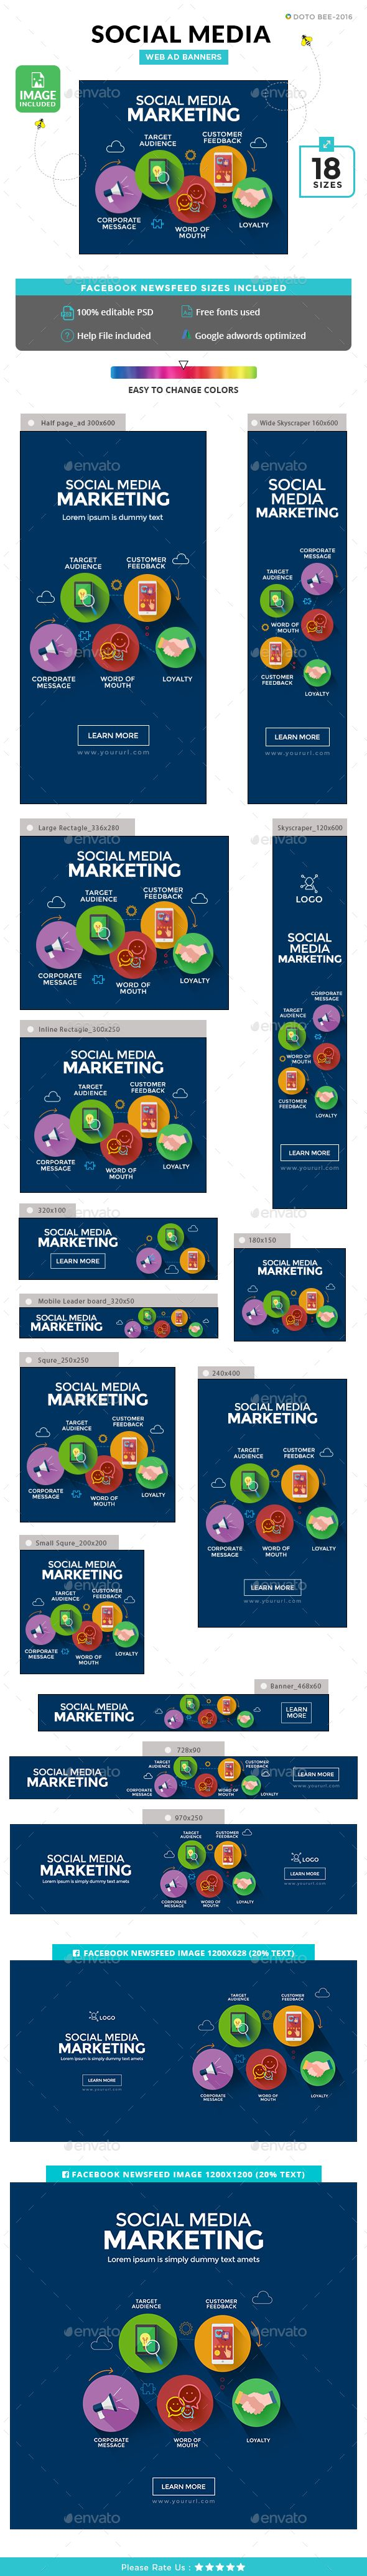 Social Media Marketing Banners Template PSD | Diseño gráfico | Pinterest